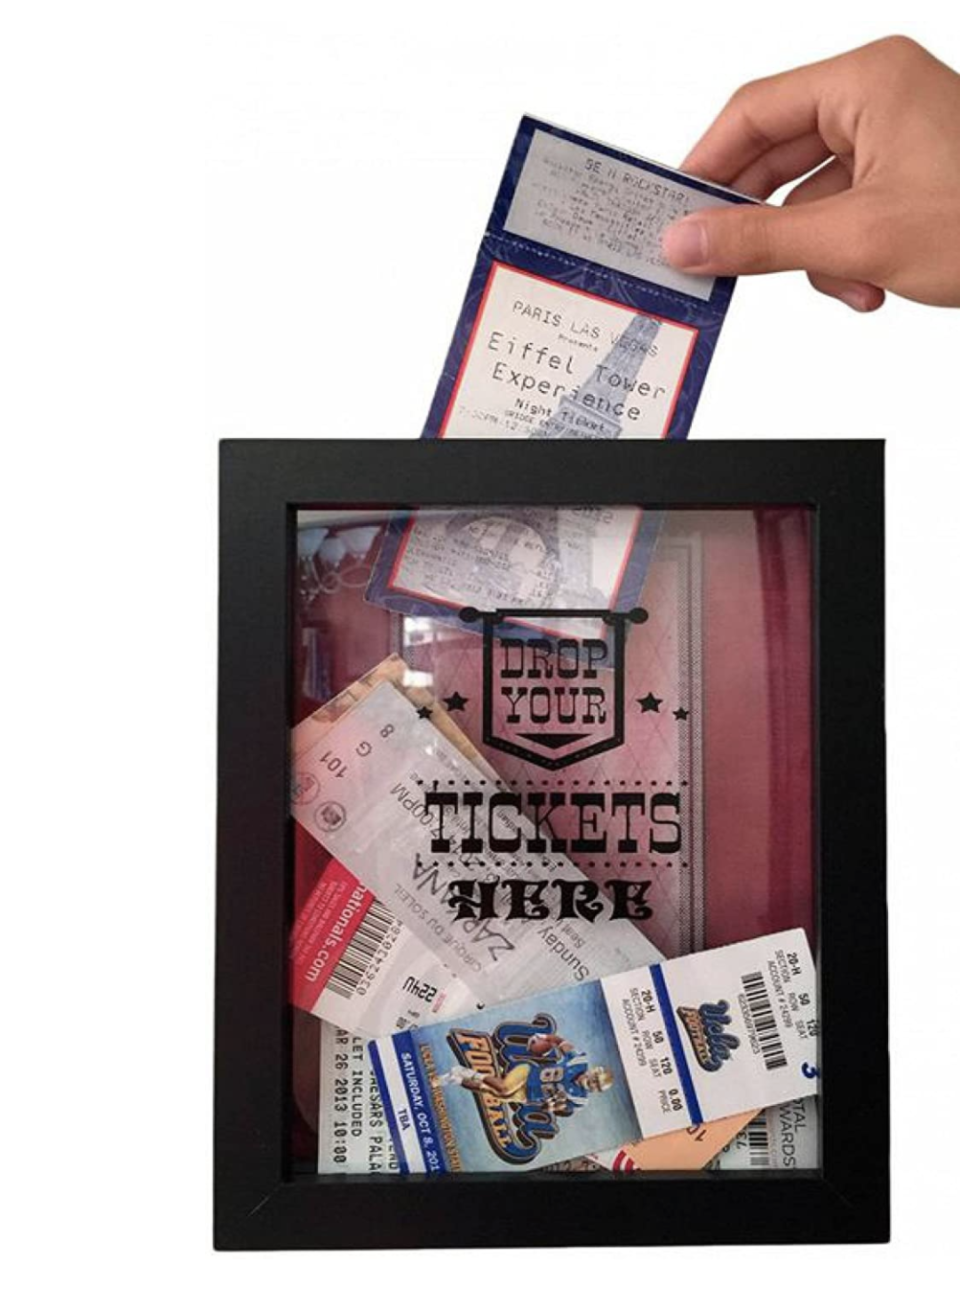 """<p><strong>TicketShadowBox</strong></p><p>amazon.com</p><p><strong>$19.97</strong></p><p><a href=""""https://www.amazon.com/dp/B01DOF8DZG?tag=syn-yahoo-20&ascsubtag=%5Bartid%7C10065.g.606%5Bsrc%7Cyahoo-us"""" rel=""""nofollow noopener"""" target=""""_blank"""" data-ylk=""""slk:Shop Now"""" class=""""link rapid-noclick-resp"""">Shop Now</a></p><p>So he can look back on all the concerts you attended before 2020.</p>"""